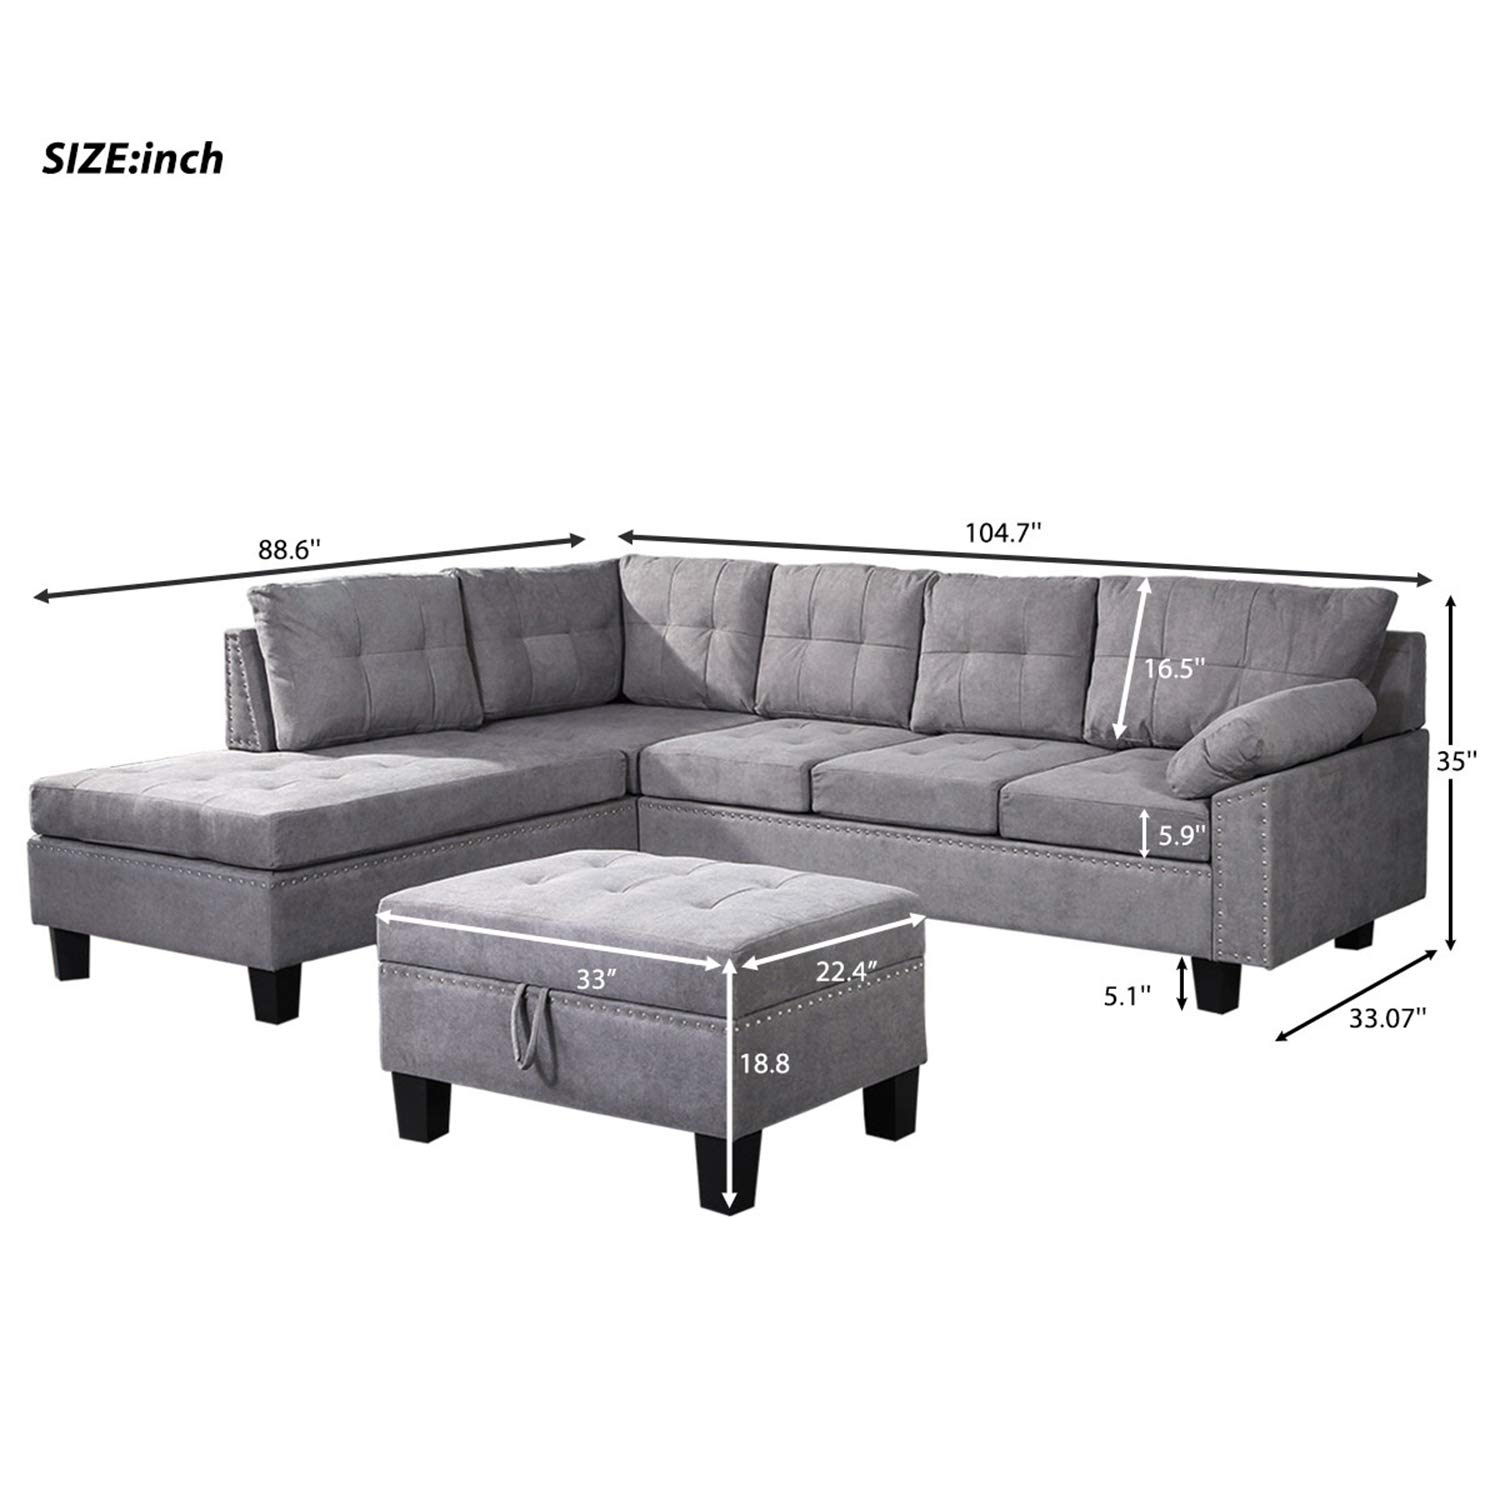 Harper Bright Designs Sectional Sofa Set with Chaise Lounge and Storage Ottoman Nail Head Detail Grey